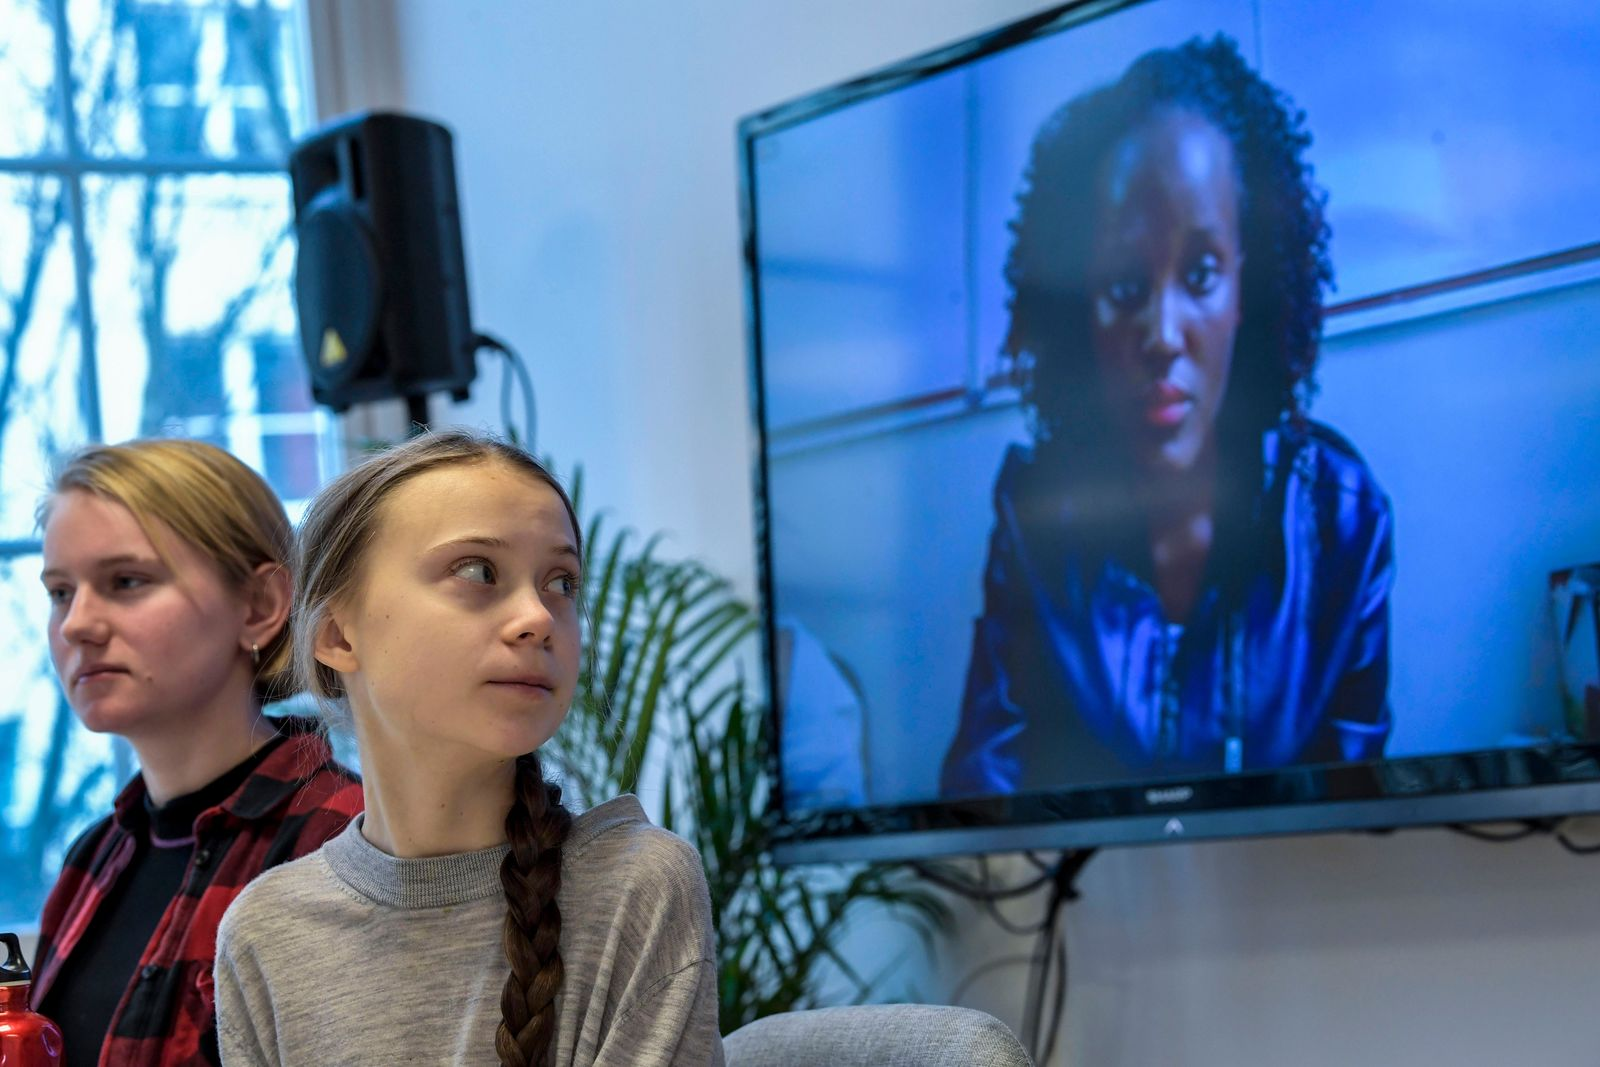 FILE - In this file photo dated Friday Jan. 31, 2020, Ugandan climate activist Vanessa Nakate, right, speaks via video-link as Ell Ottosson Jarl and Greta Thunberg, center, together attend a press conference with climate activists and experts from Africa, in Stockholm, Sweden(Pontus Lundahl/TT FILE  via AP)